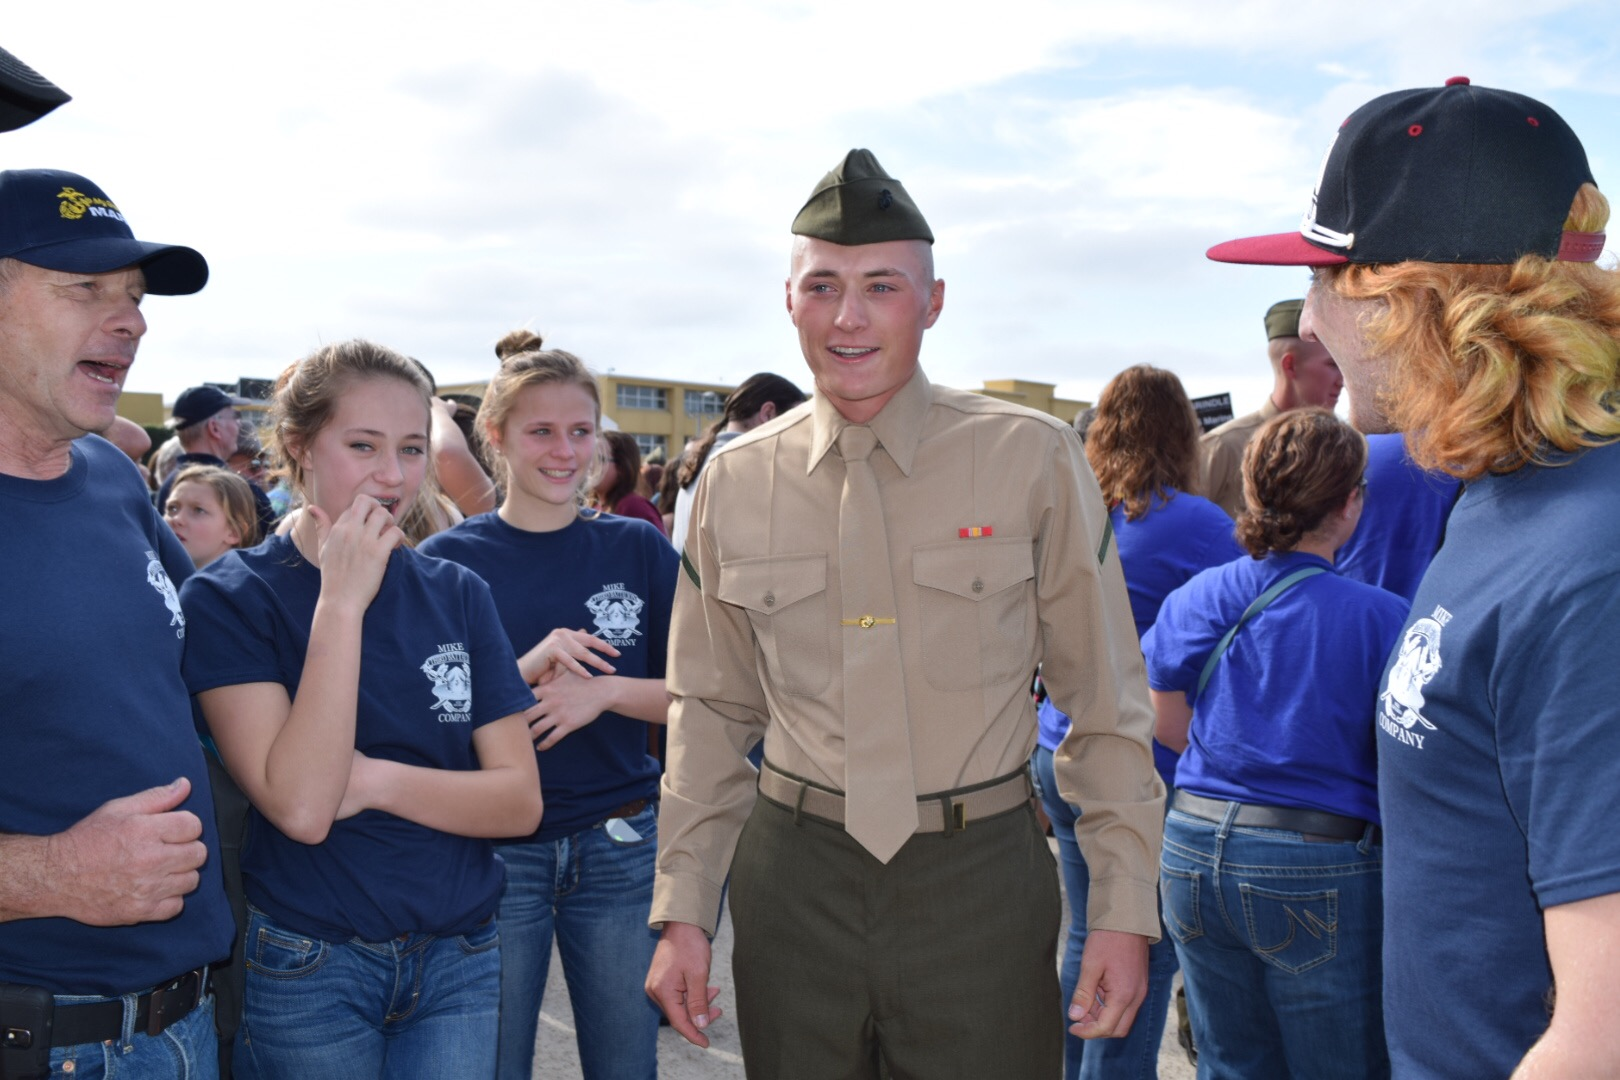 US Marine Corps Graduation from Bootcamp in San Diego. This was the first time we'd seen him in three months.